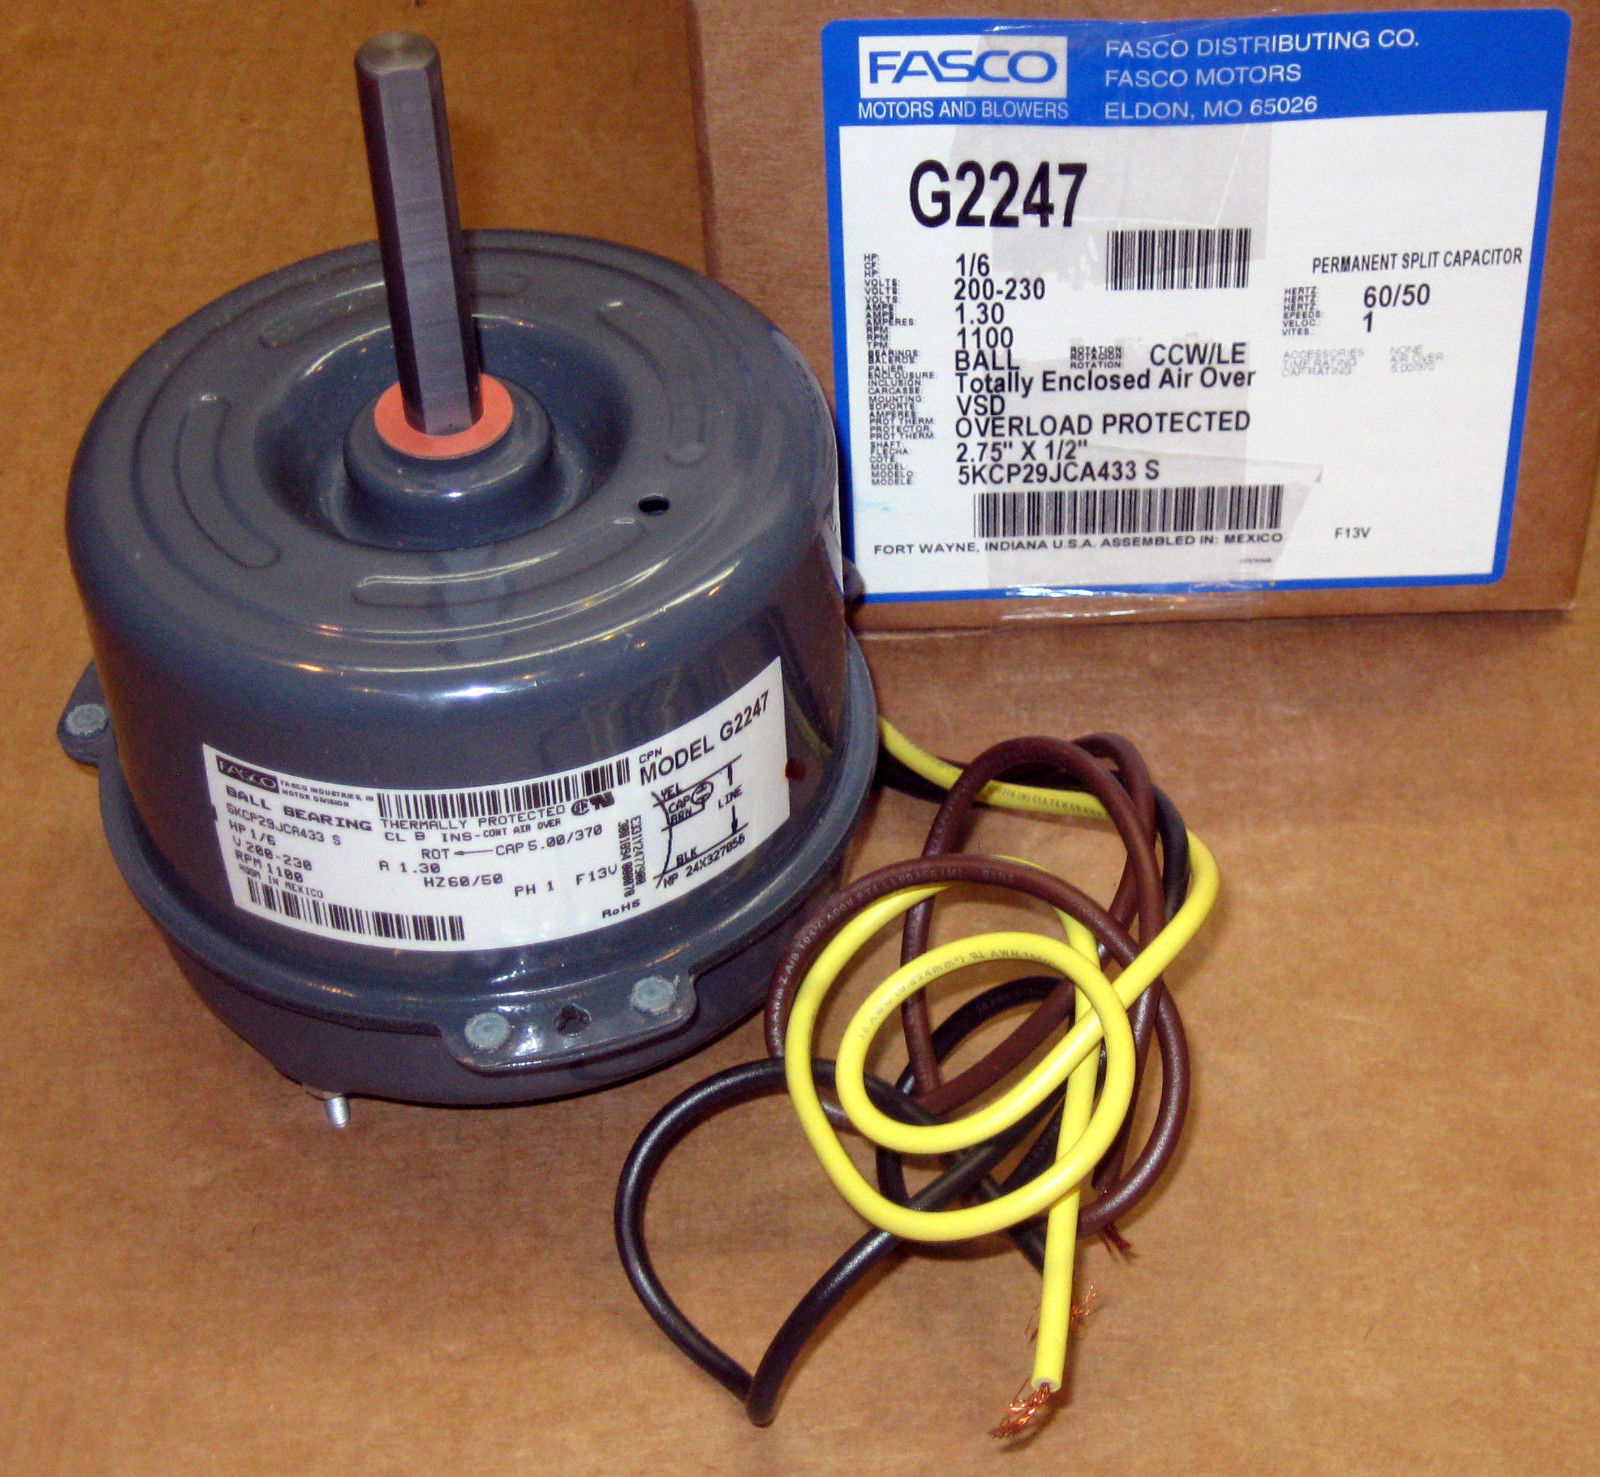 230 Volt Home Wiring Electrical Diagrams G2247 Fasco 5 Diameter Cap Can Motor 200 Volts 1075 Rpm 1 6 Electric